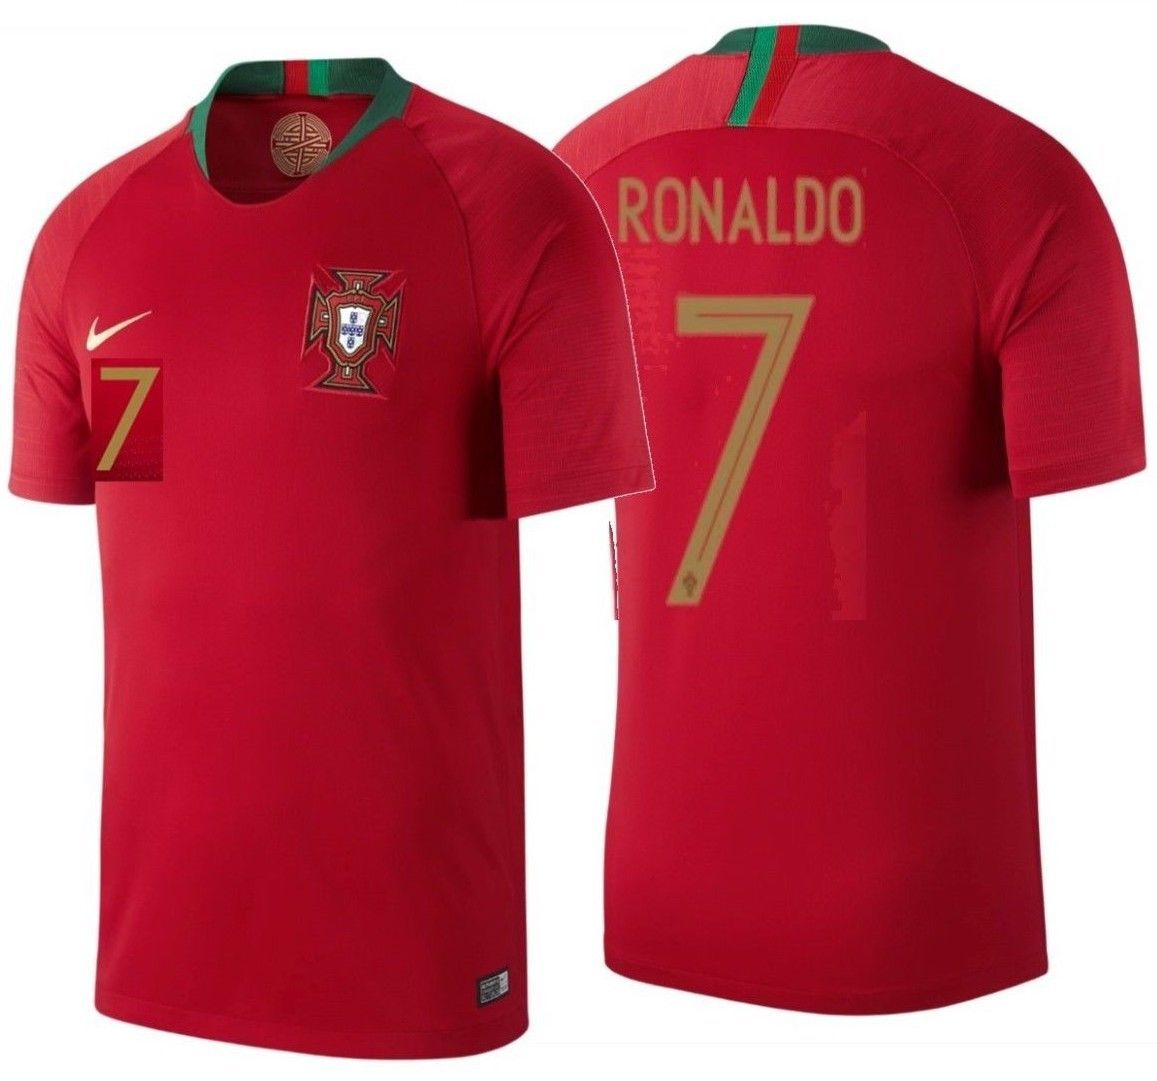 Nike Cristiano Ronaldo Portugal Home Jersey and 50 similar items fcc2d742c